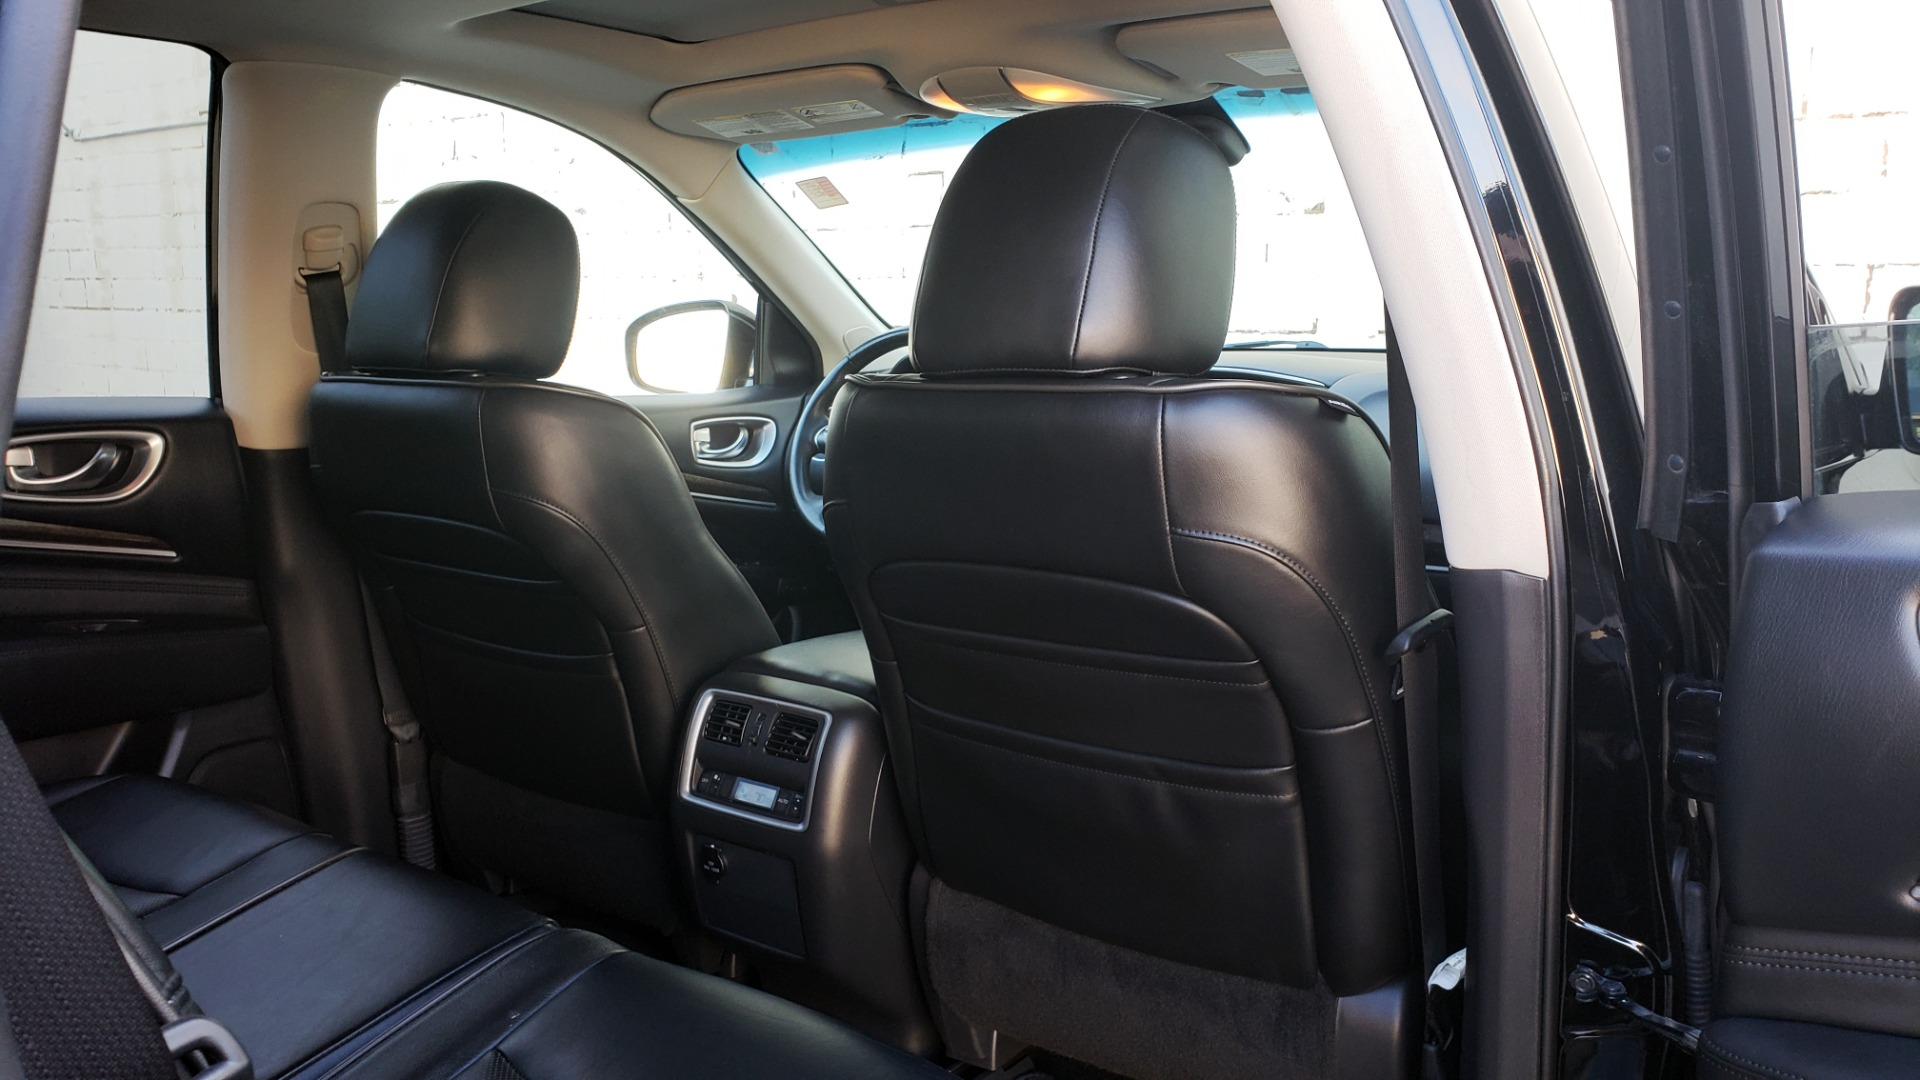 Used 2015 INFINITI QX60 AWD / PREM PLUS PKG / NAV / SUNROOF / BOSE / 3-ROW / REARVIEW for sale $19,695 at Formula Imports in Charlotte NC 28227 77